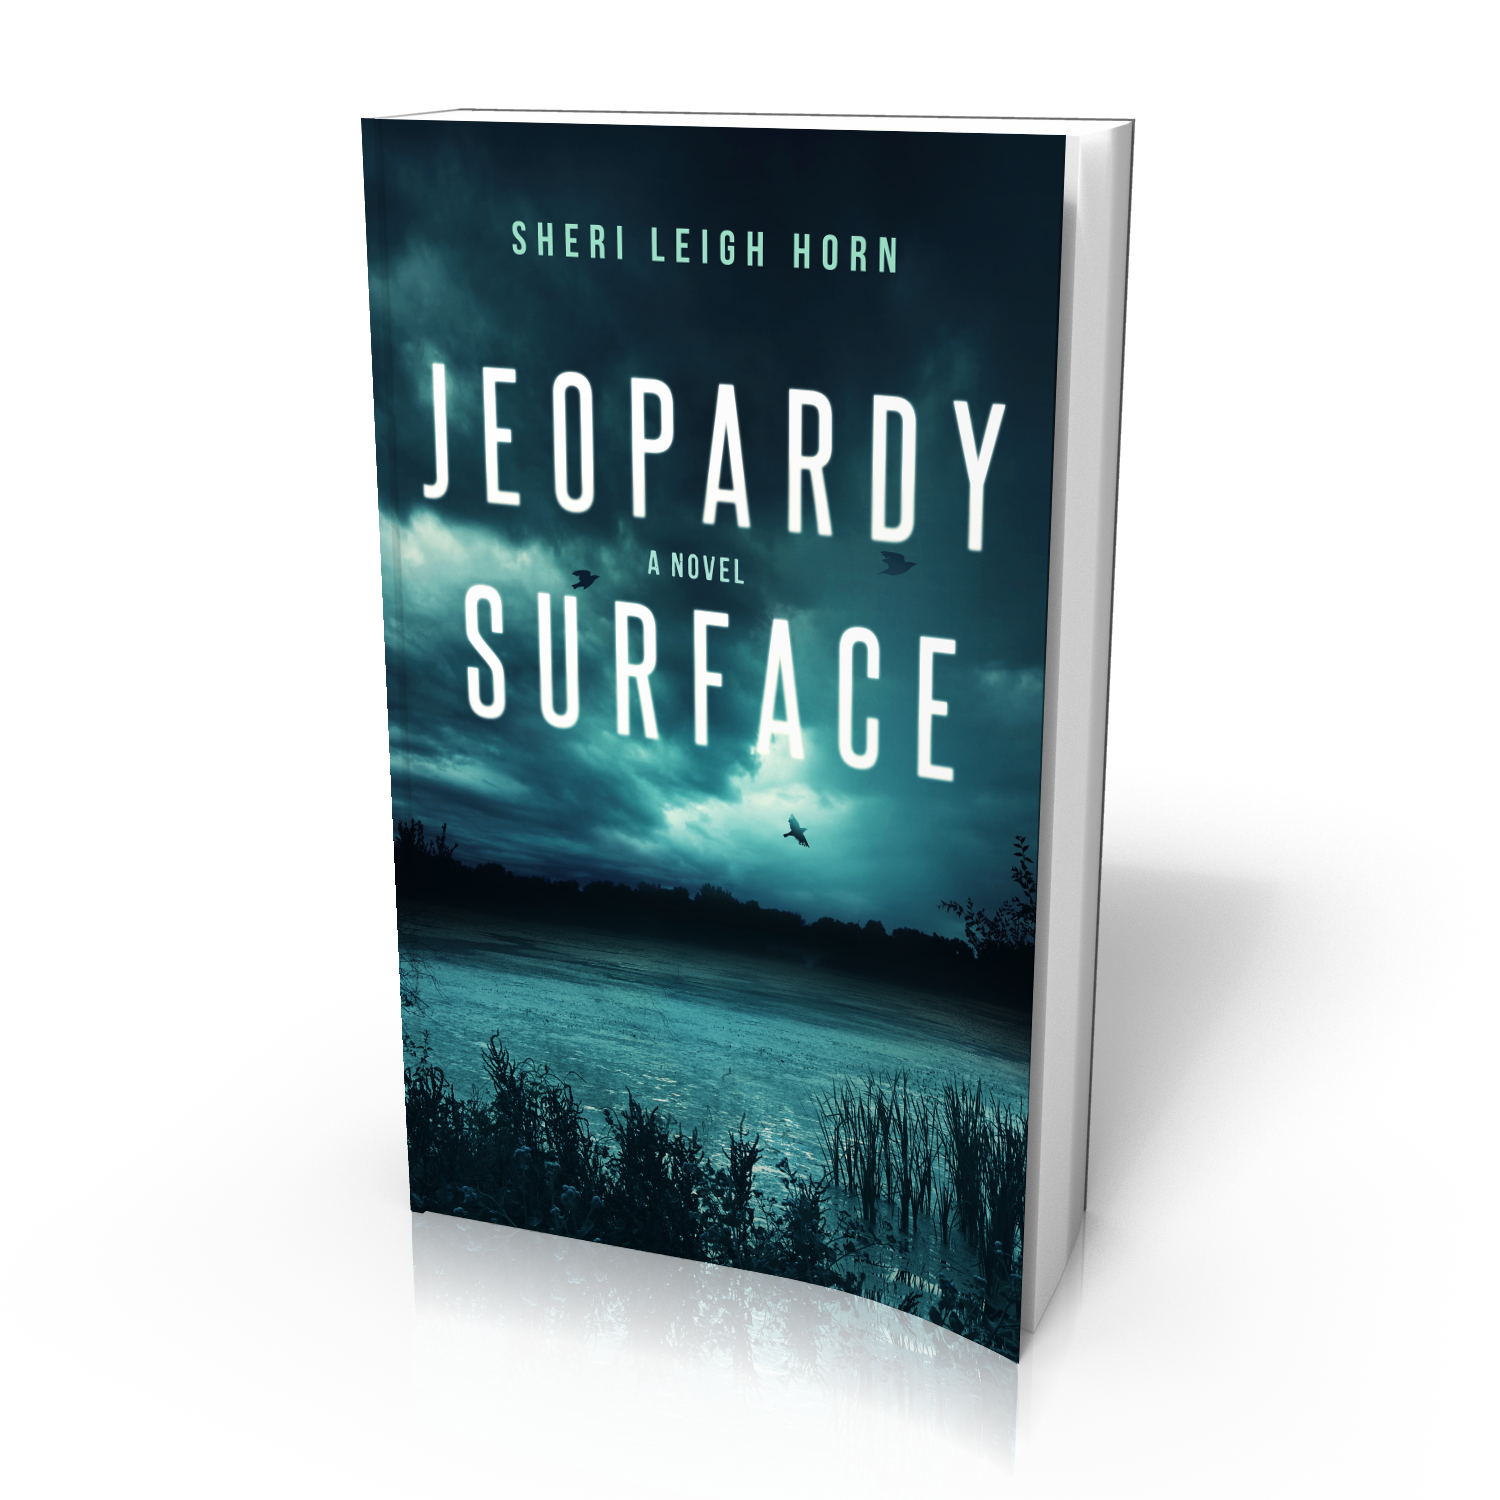 Jeopardy Surface - 3D